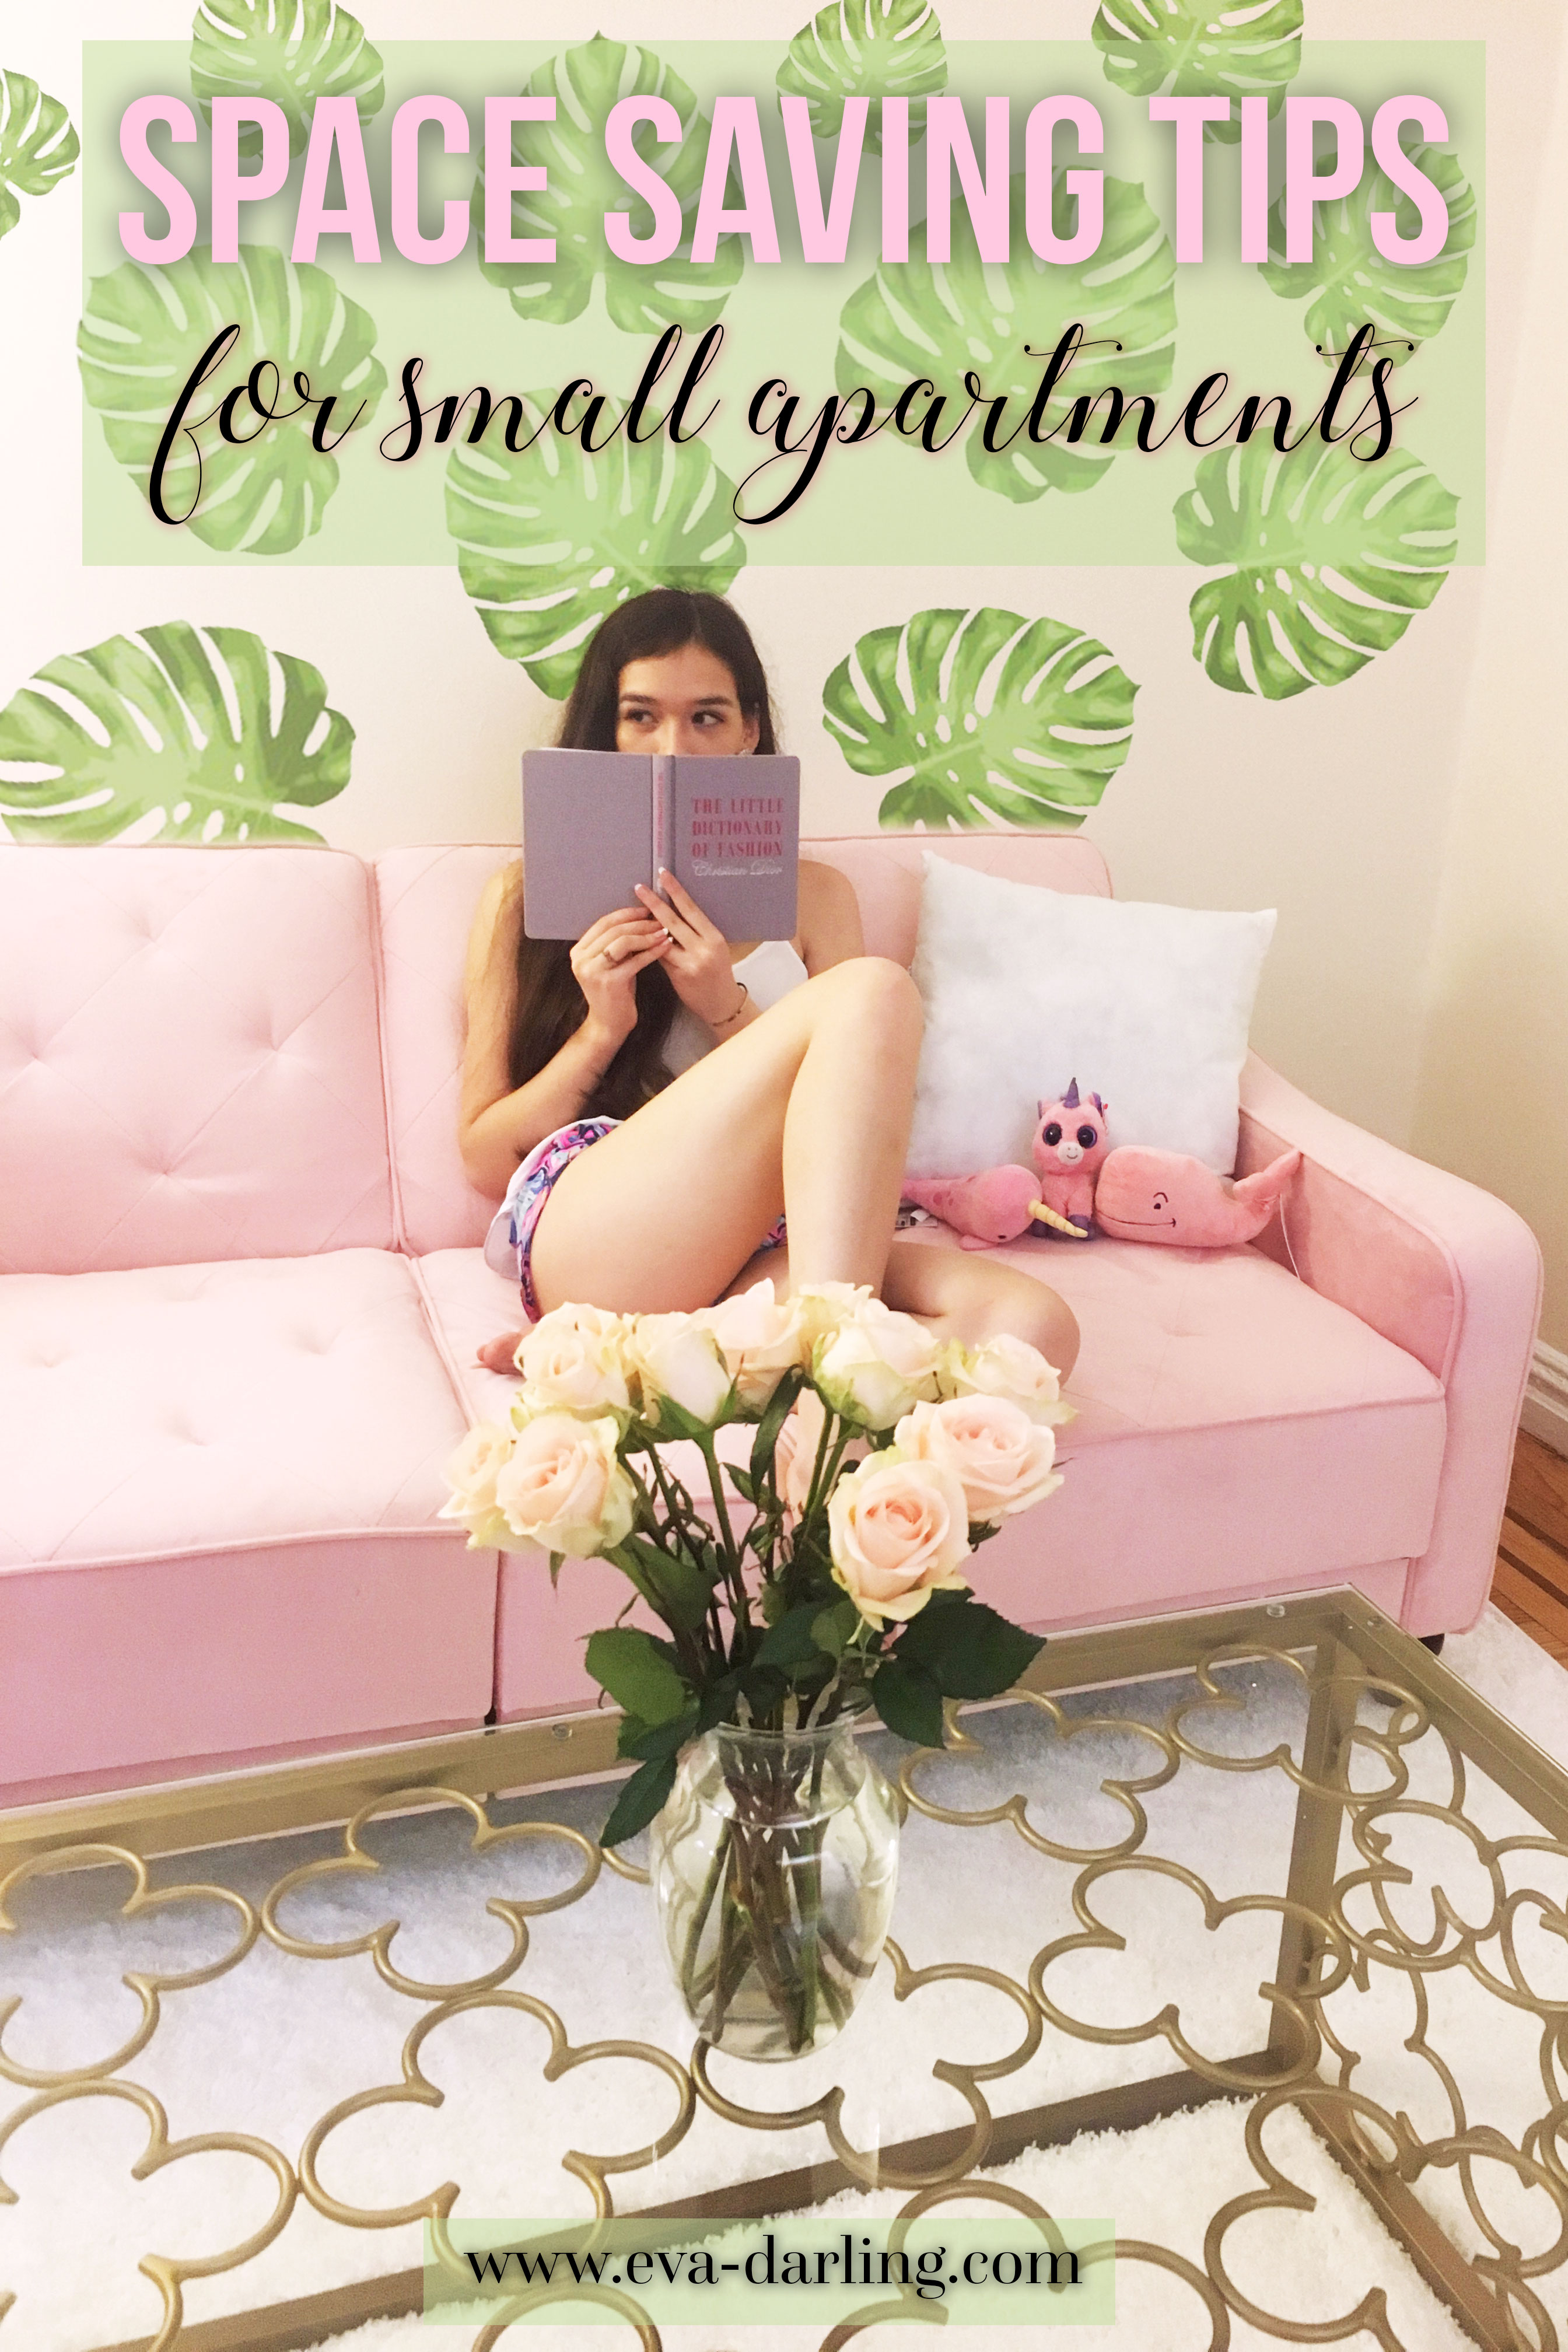 College lifestyle blogger Eva Phan of NYC based blog Eva Darling shares her space saving tips for small apartments sitting in her manhattan studio apartment dhp furniture novogratz pink velvet couch